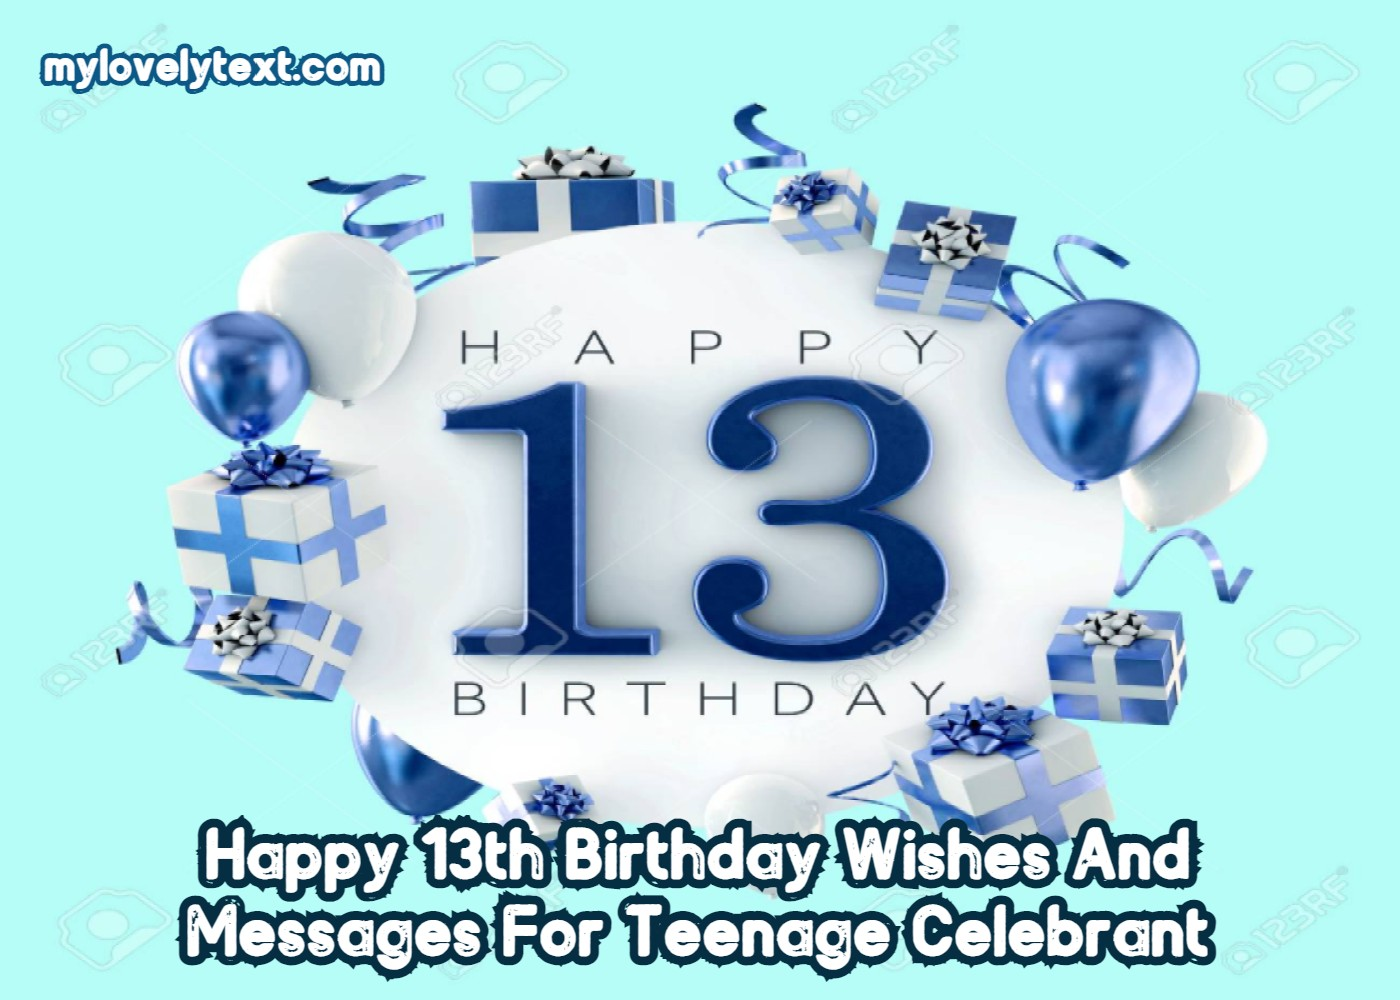 Happy 13th Birthday Wishes Messages For Teenage Celebrant